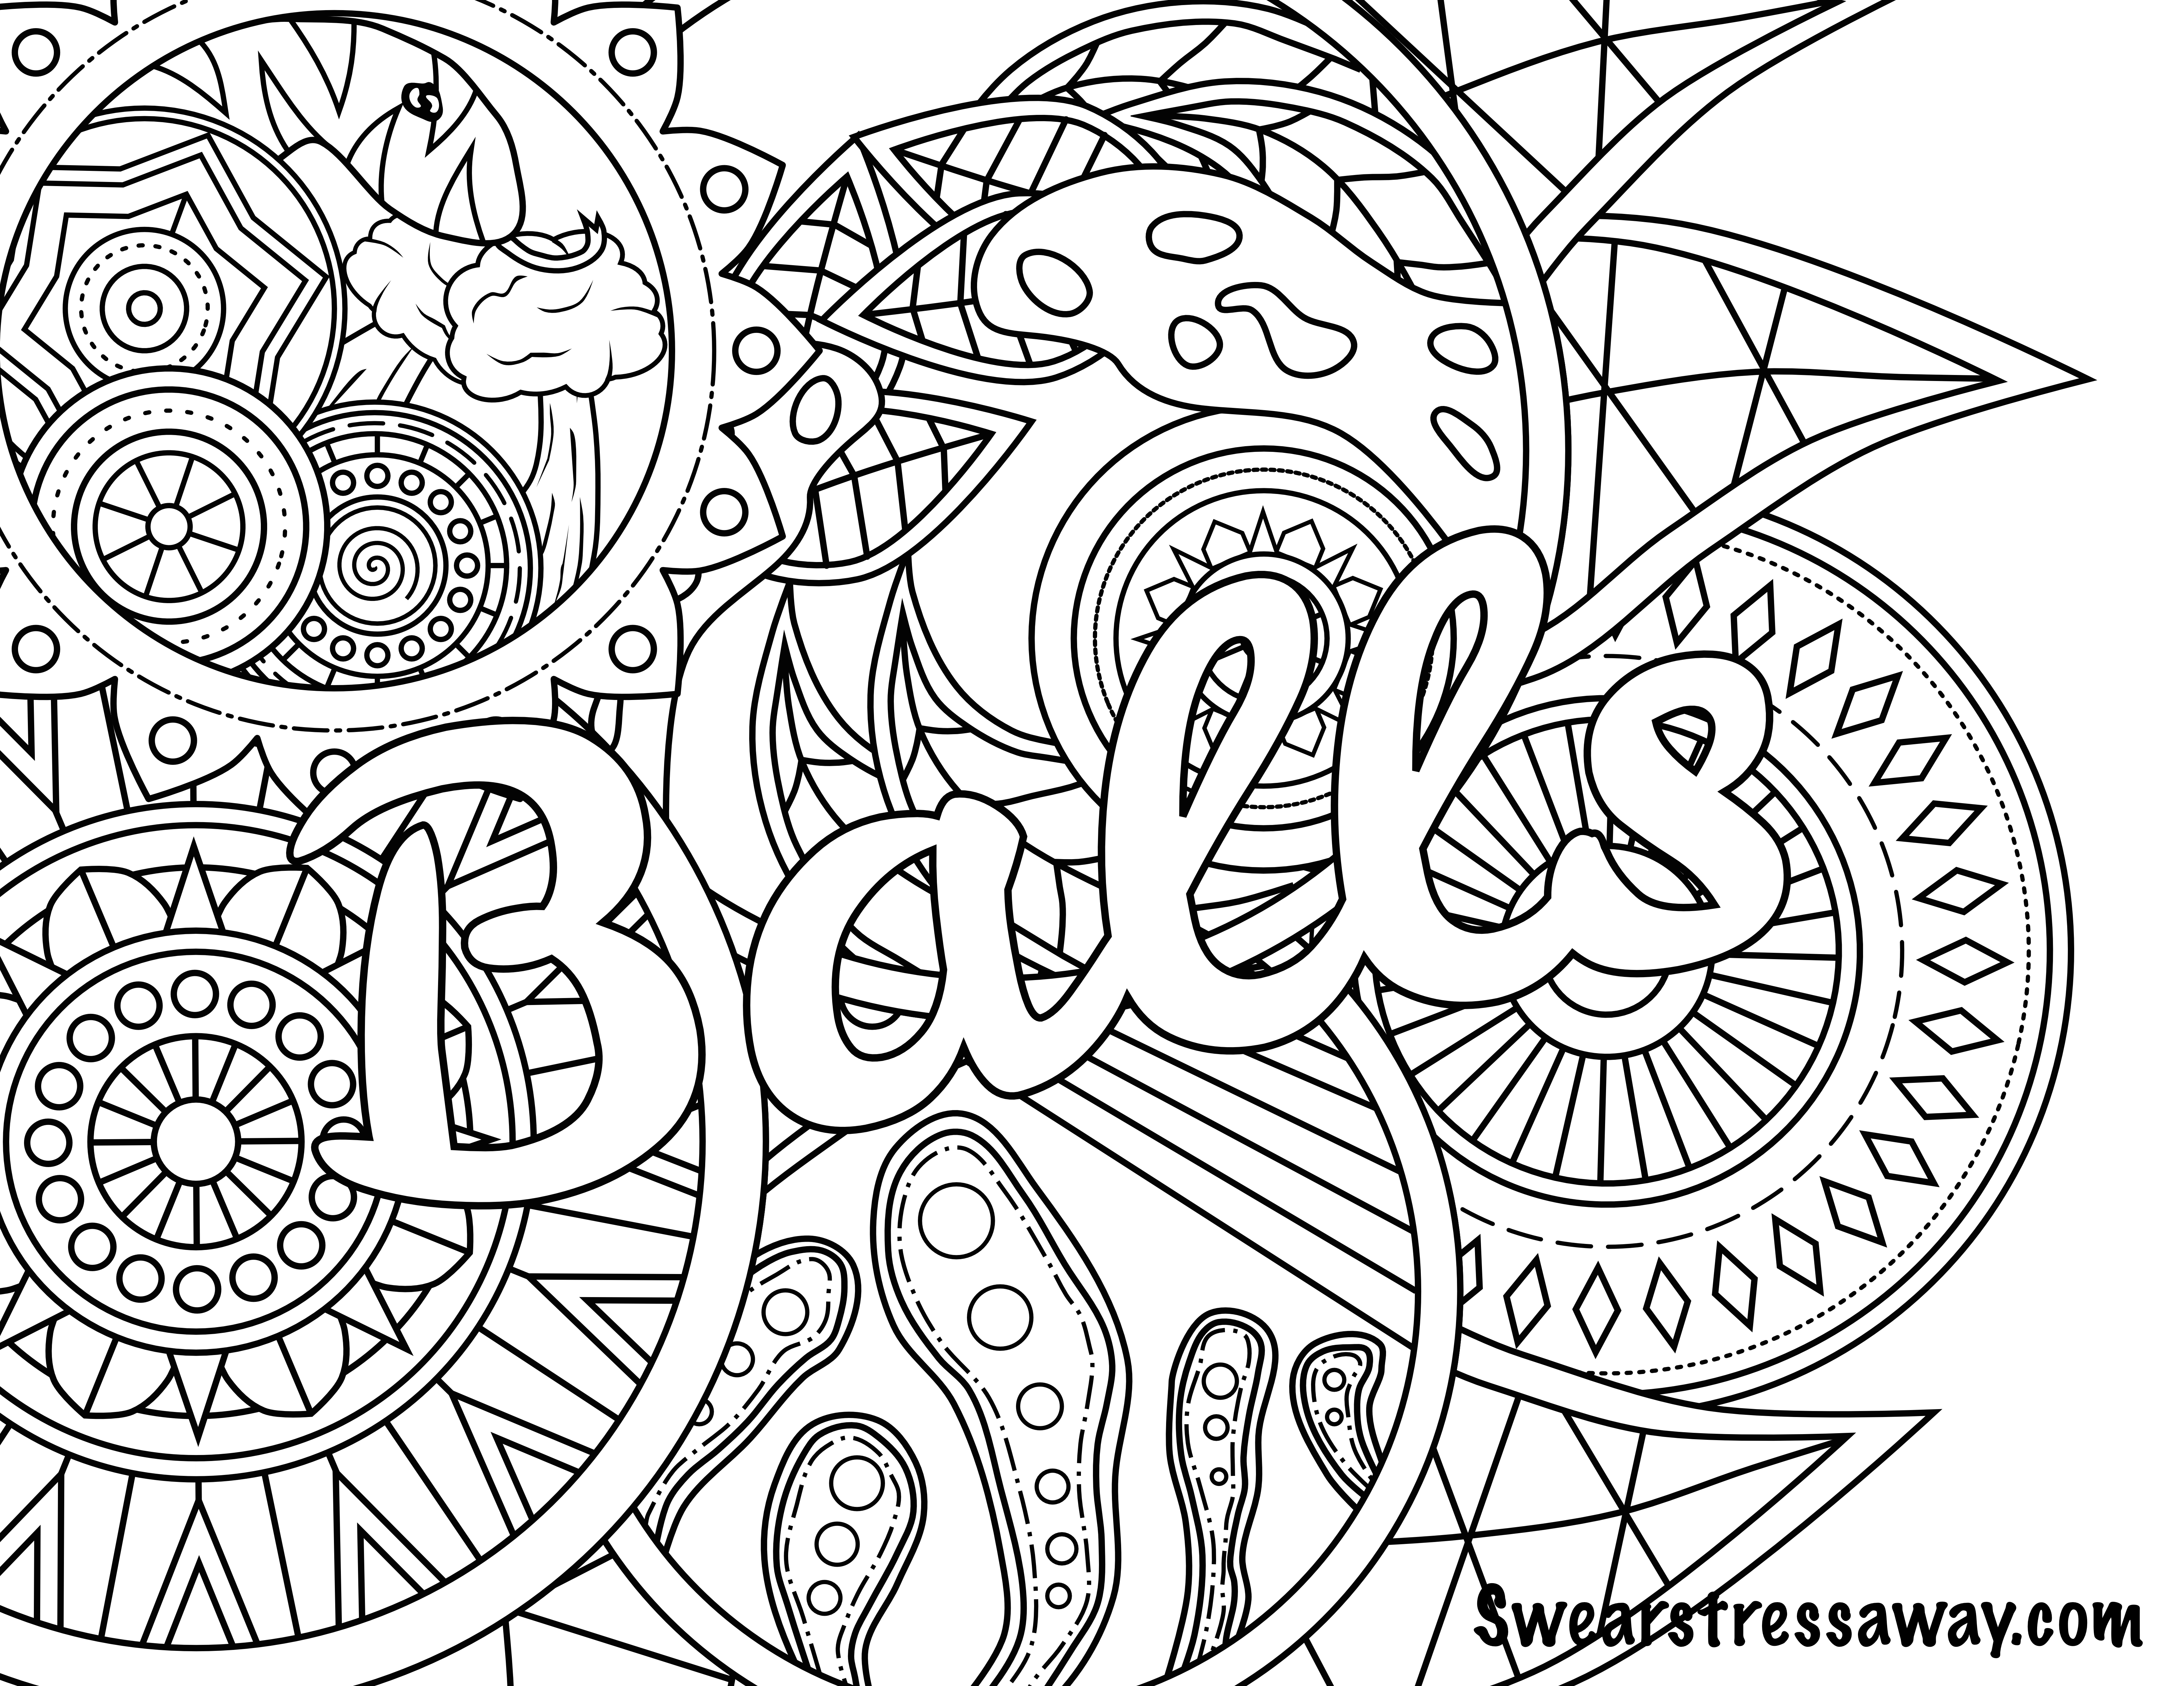 Balls - Swear Word Coloring Page - Adult Coloring Page - Free Printable Swear Word Coloring Pages